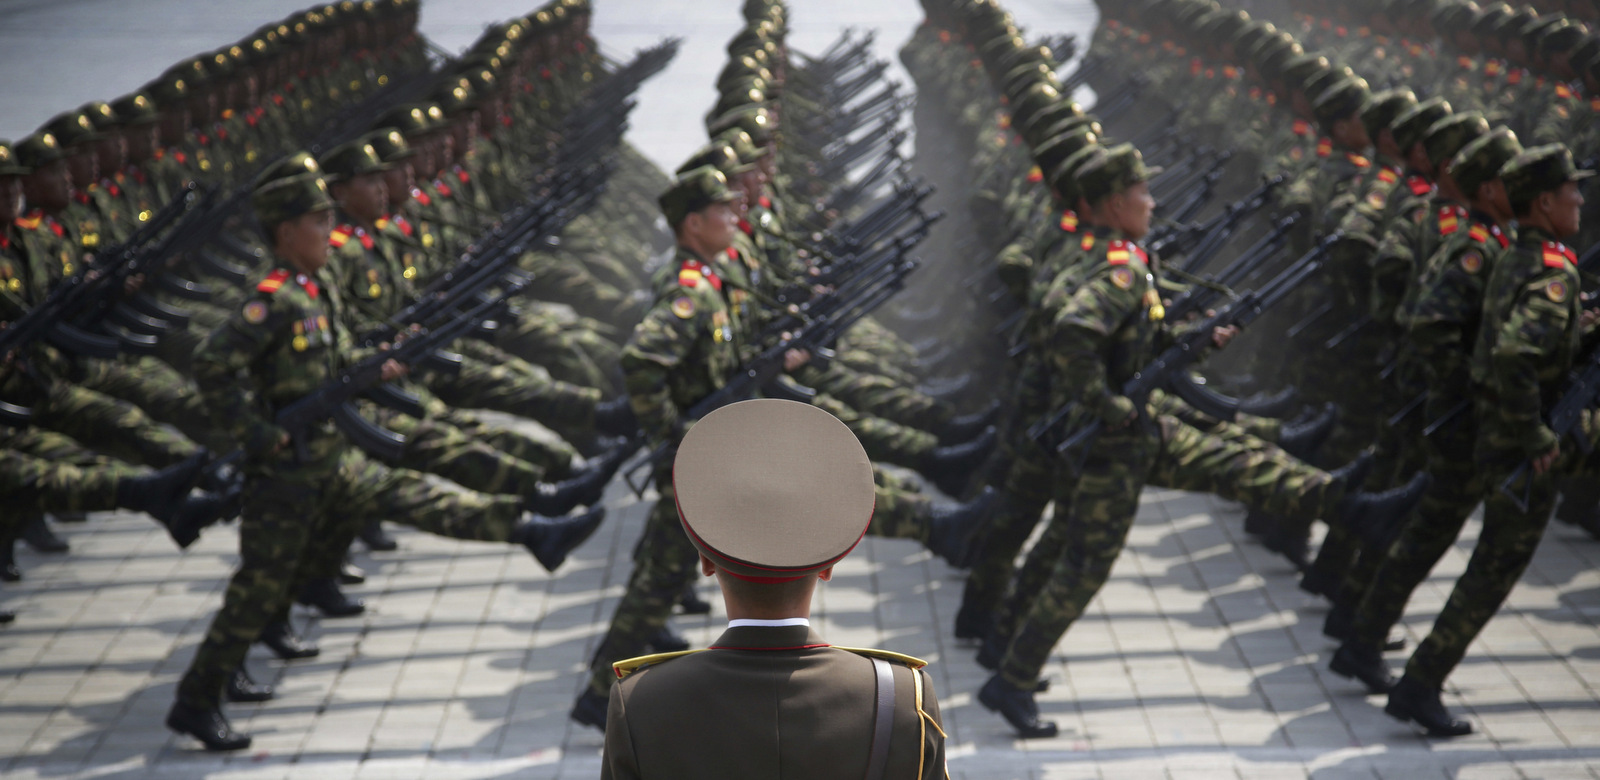 In this April 15, 2017, photo, soldiers goose-step across Kim Il Sung Square in Pyongyang, North Korea, during a parade to celebrate the 105th birth anniversary of Kim Il Sung, the country's late founder and grandfather of current ruler Kim Jong Un. The message of the parade is clear: North Korea is, or is near to being, able to launch a pre-emptive strike against a regional target. It is preparing to withstand a retaliatory follow-up attack if it does, and it is building the arsenal it needs to then launch a second wave of strikes, this time at the U.S. mainland. (AP Photo/Wong Maye-E, File)